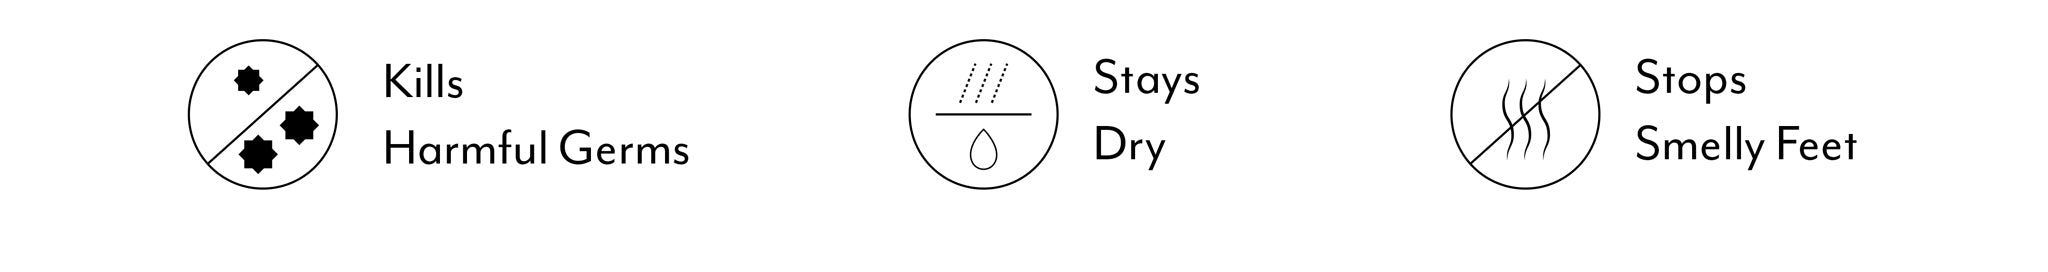 The benefits of Drysilver Antimicrobial Fabric